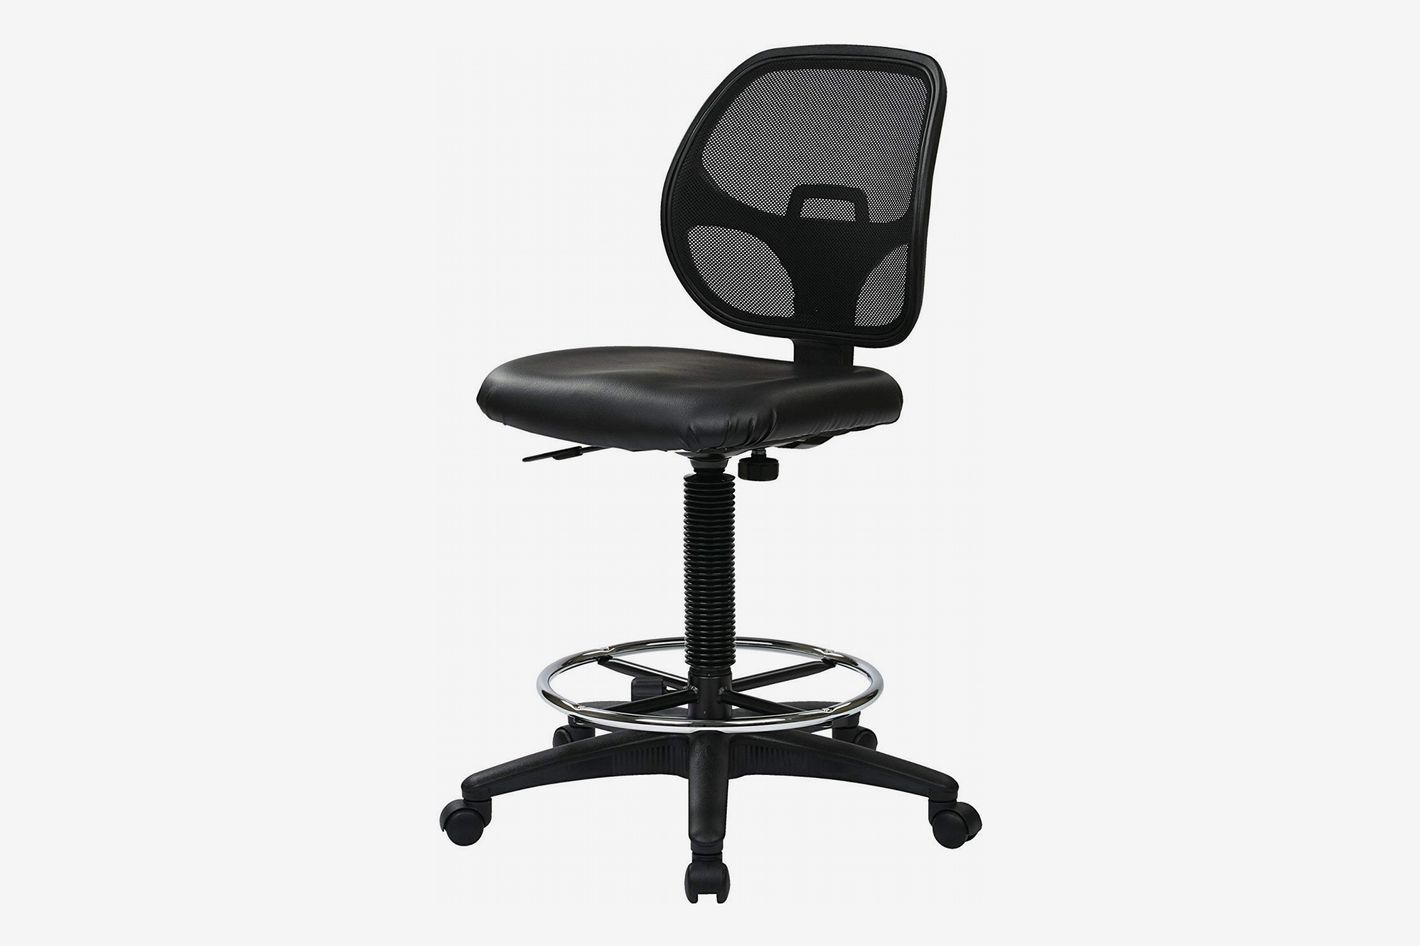 19 Best Office Chairs And Home Office Chairs 2019